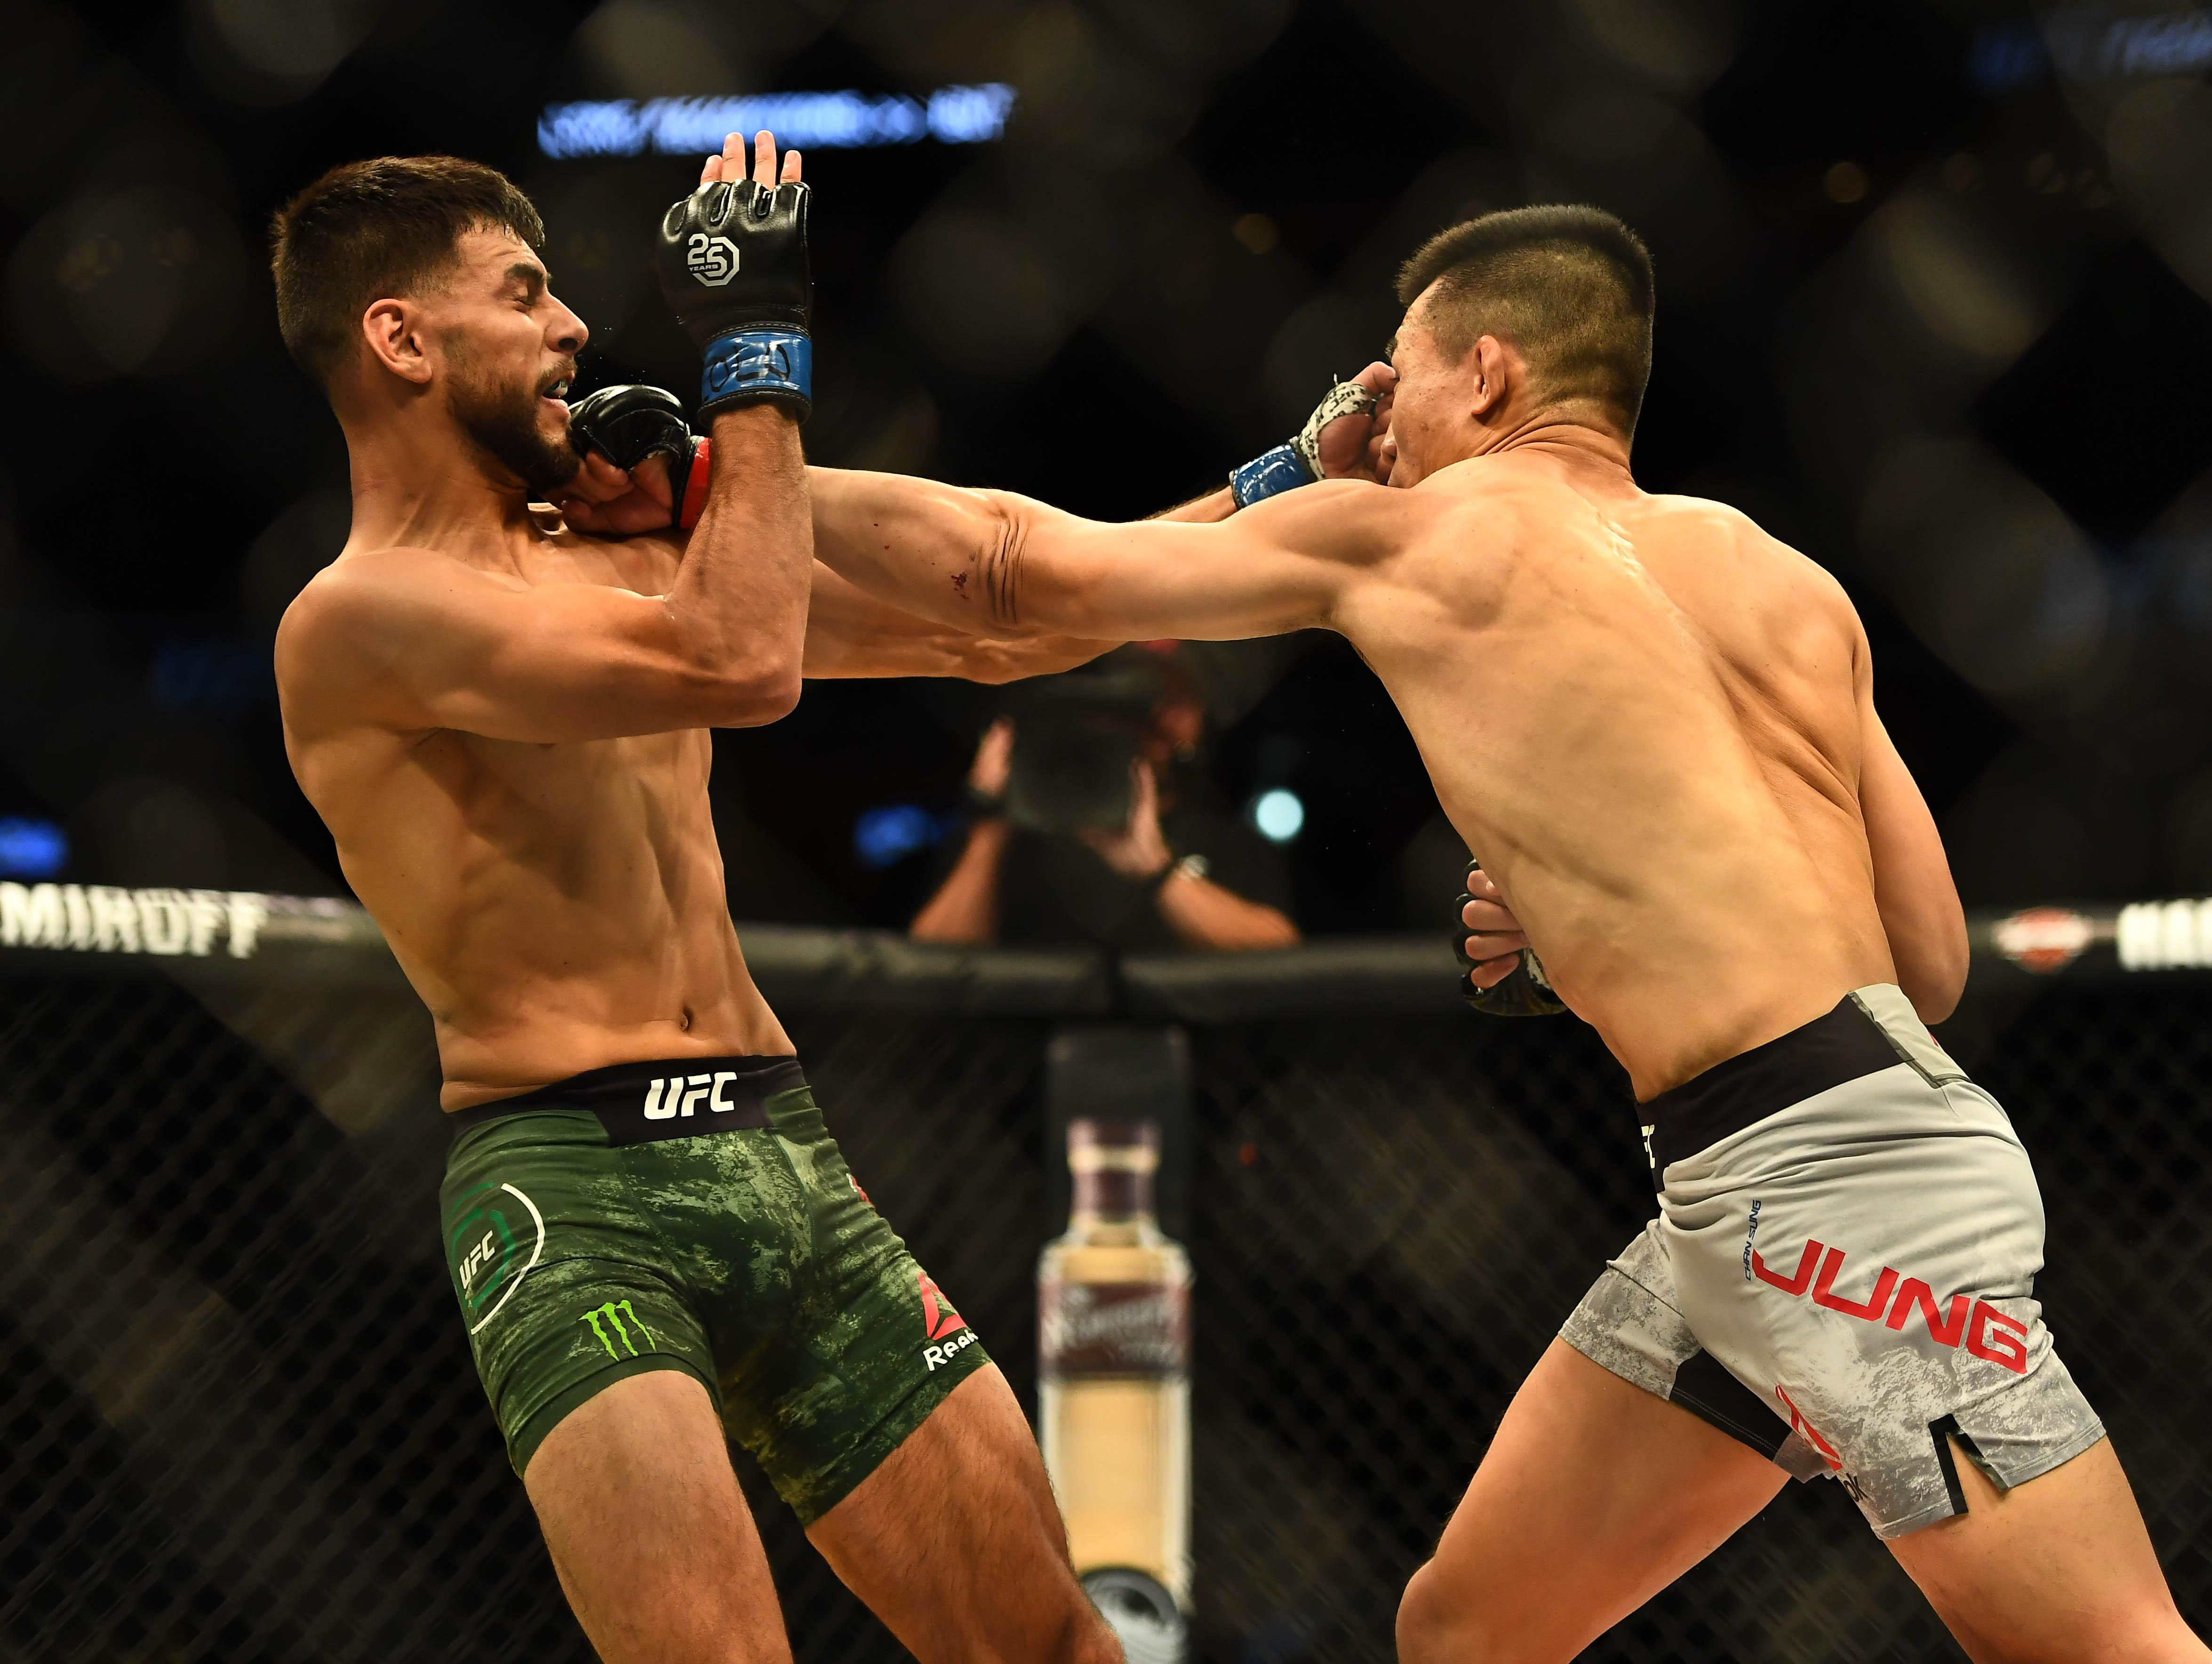 It was a close encounter throughout at UFC Fight Night 139 but Jung was ahead before the brutal blow